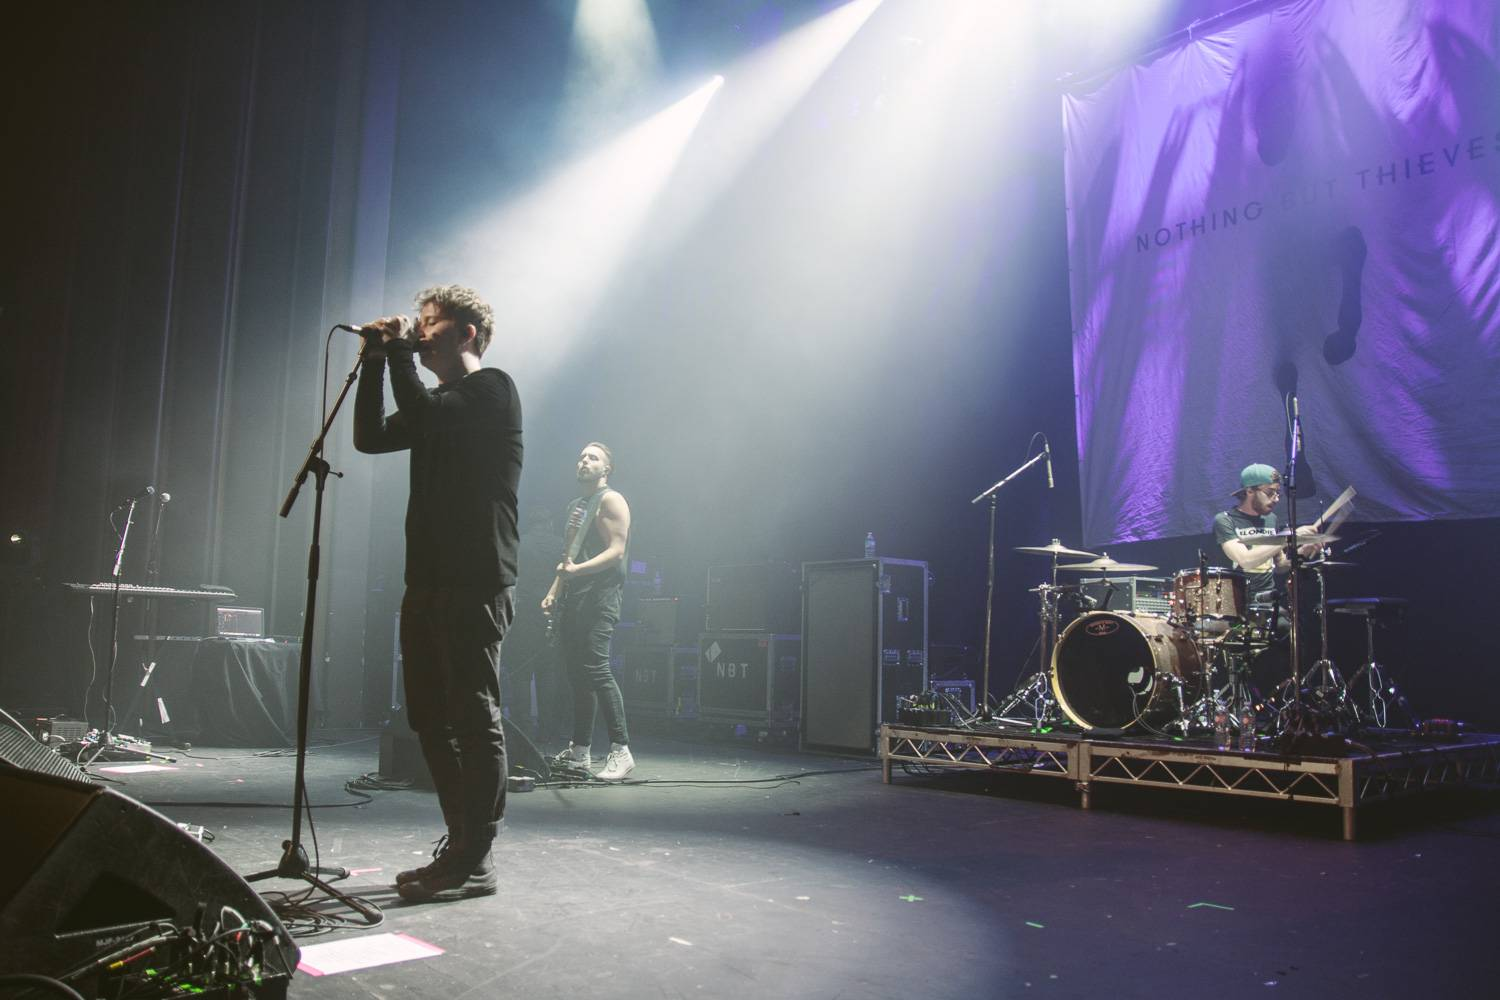 Nothing But Thieves at the Vogue Theatre, Vancouver, Sept. 14 2016. Pavel Boiko photo.